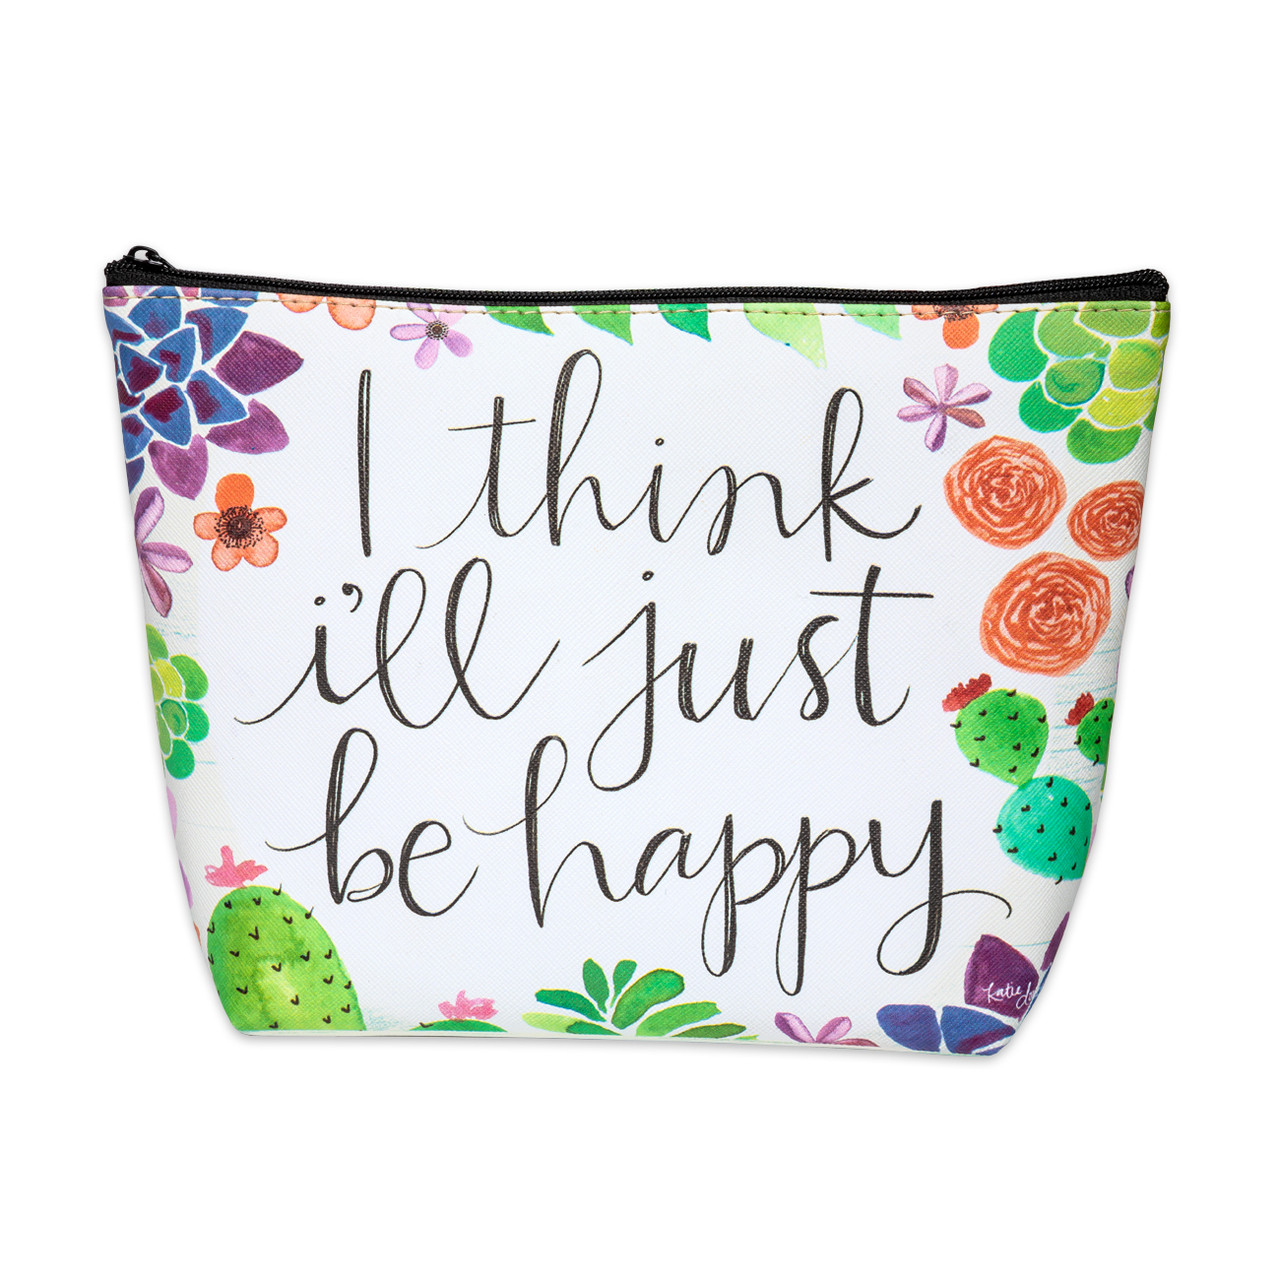 cosmetic bag inspirational gift i think i'll just be happy